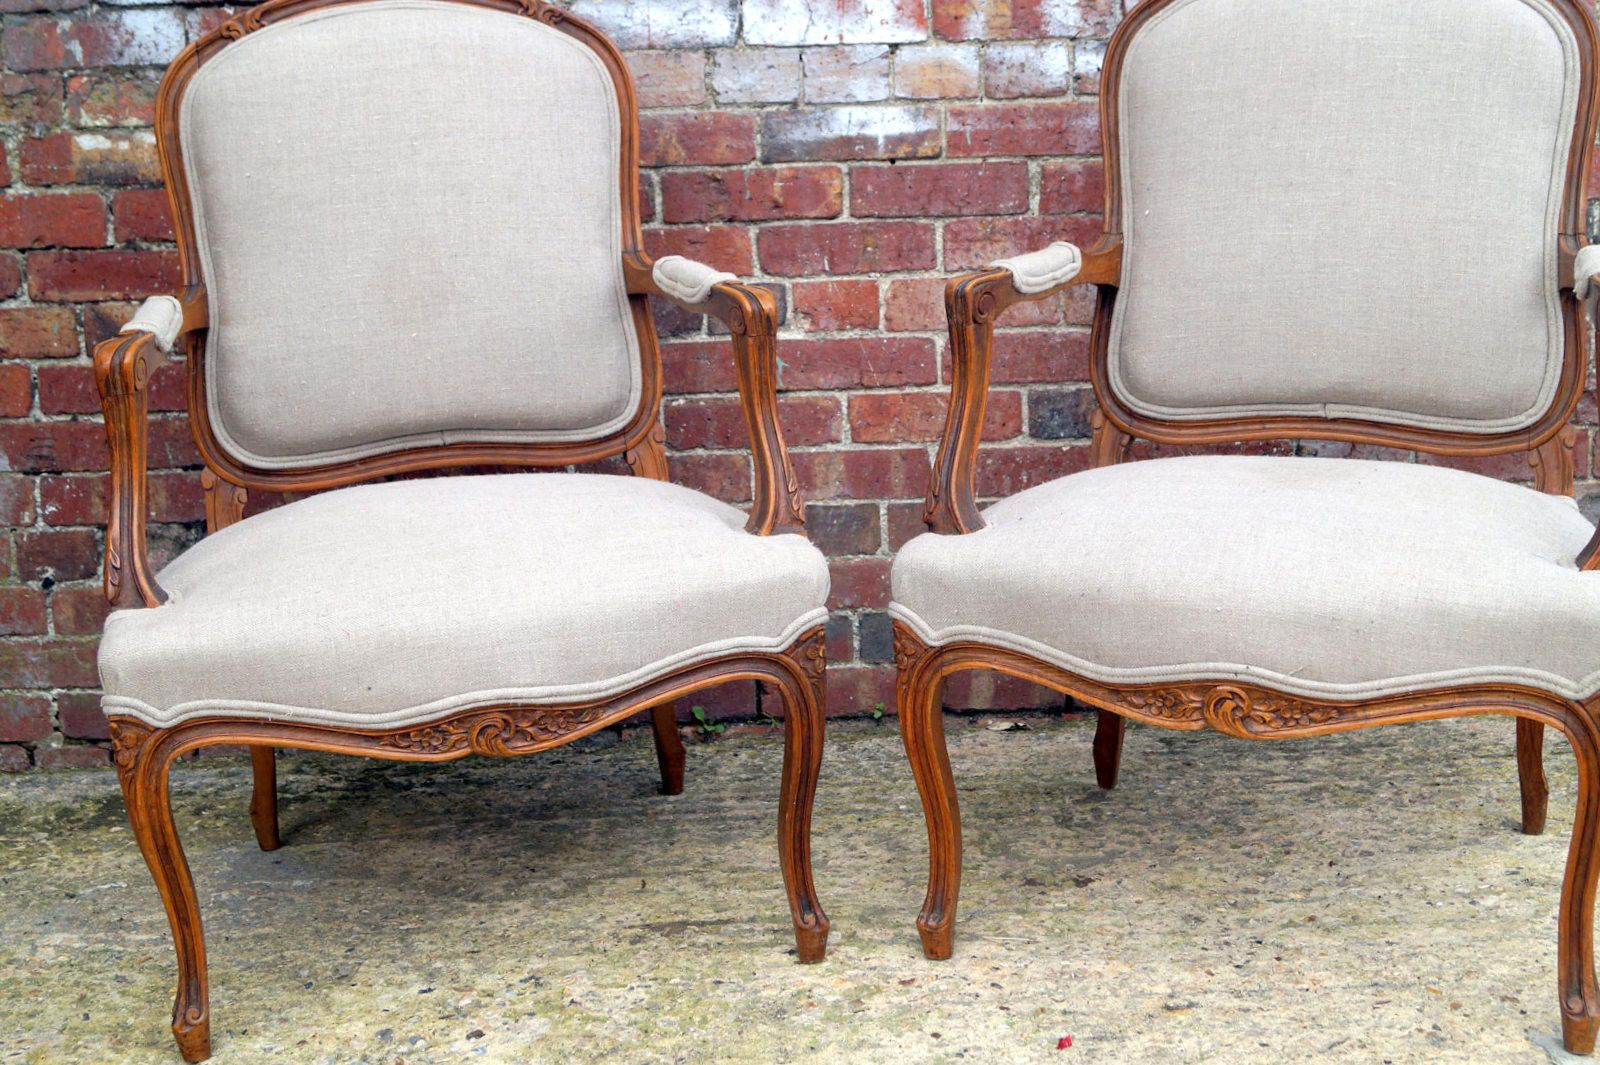 salon chairs for sale chair beds antique french set of 2 at pamono